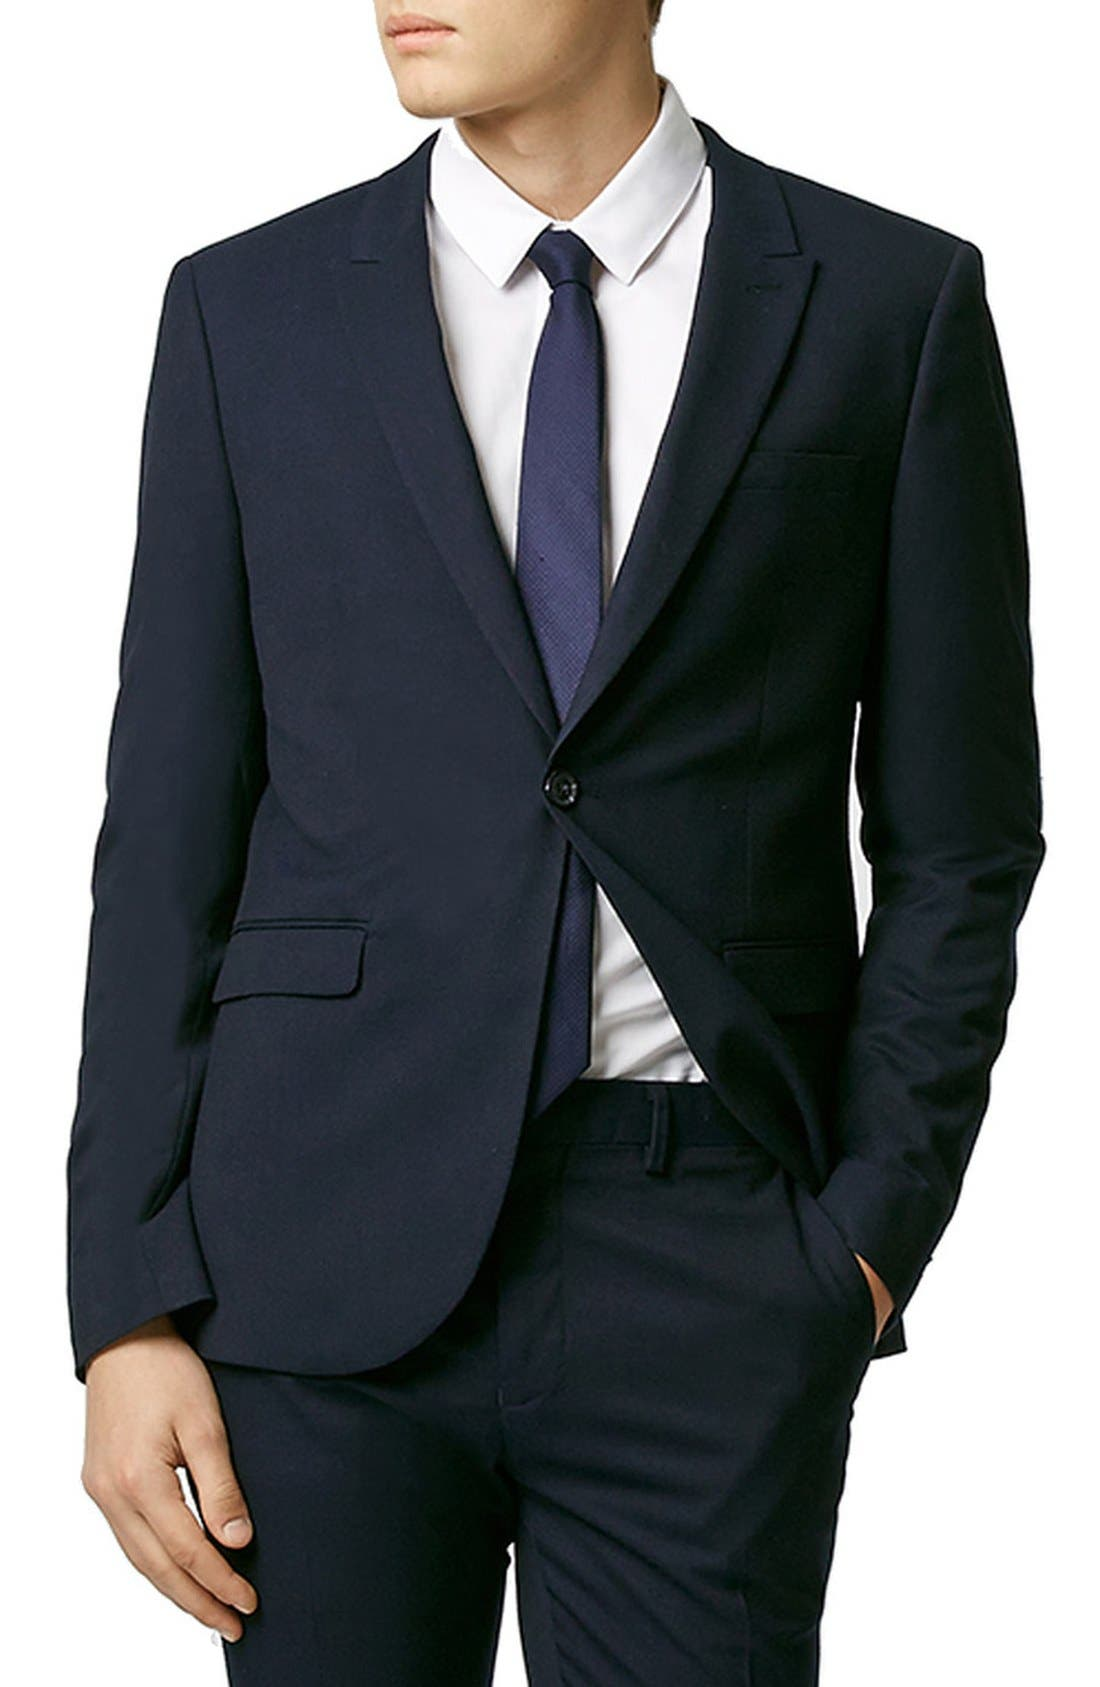 Topman Skinny Fit Navy Blue Suit Jacket